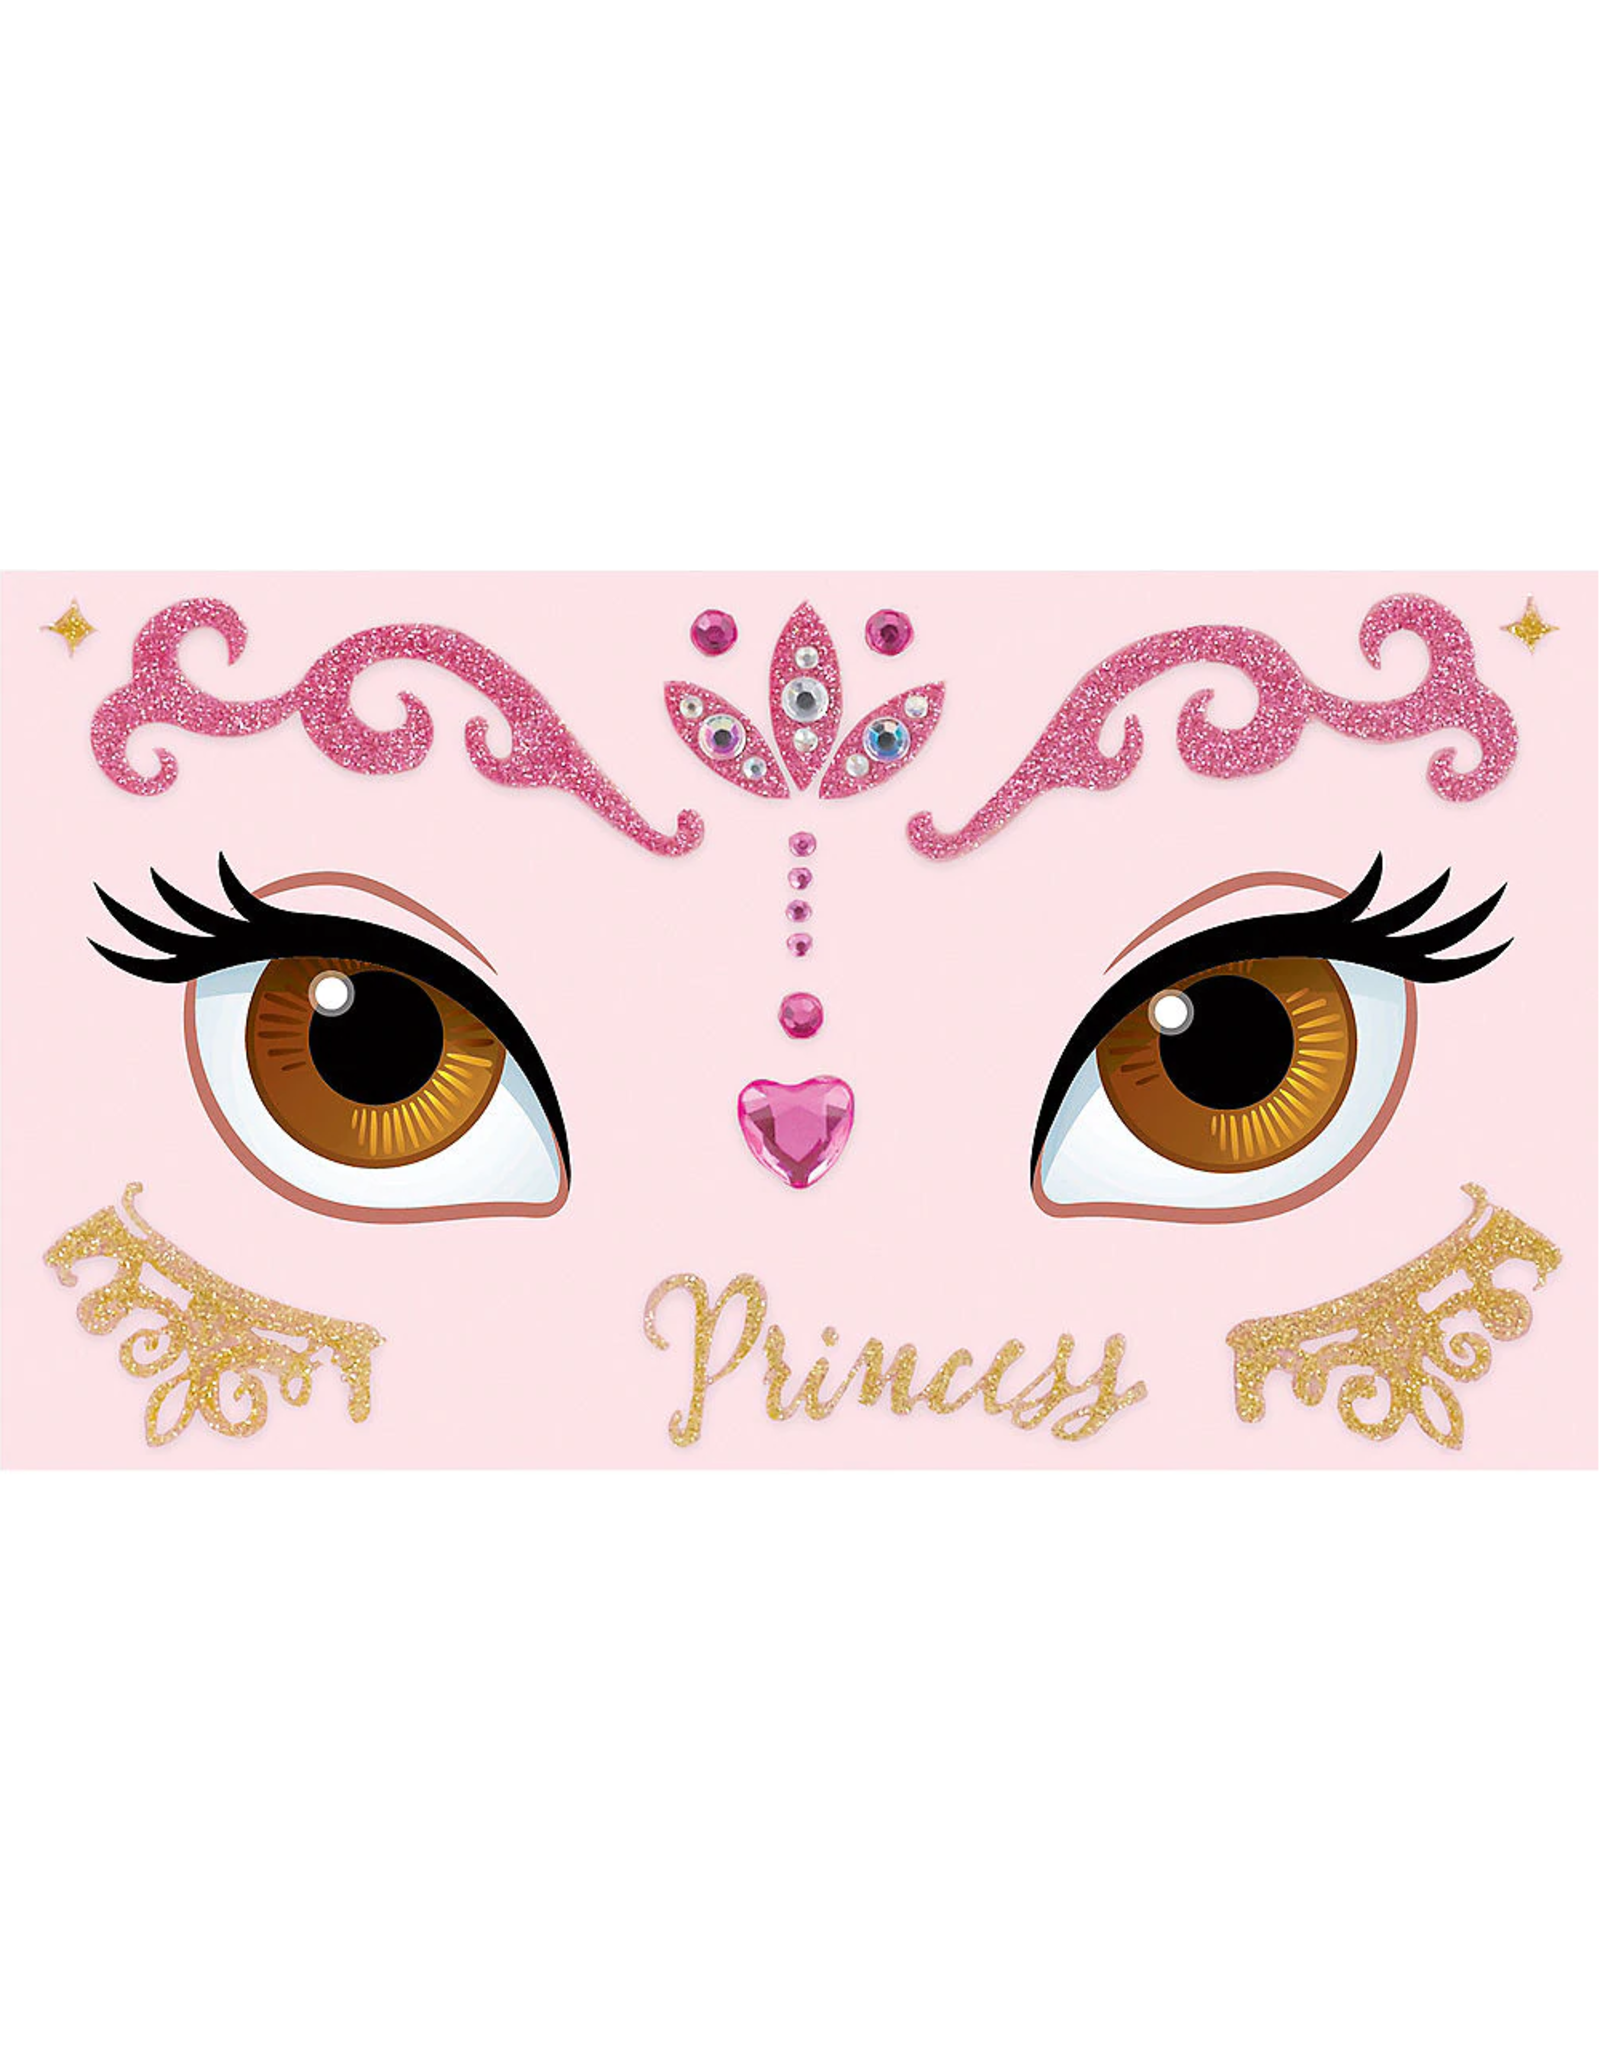 Disney Princess Once Upon a Time Body Jewelry - 18ct